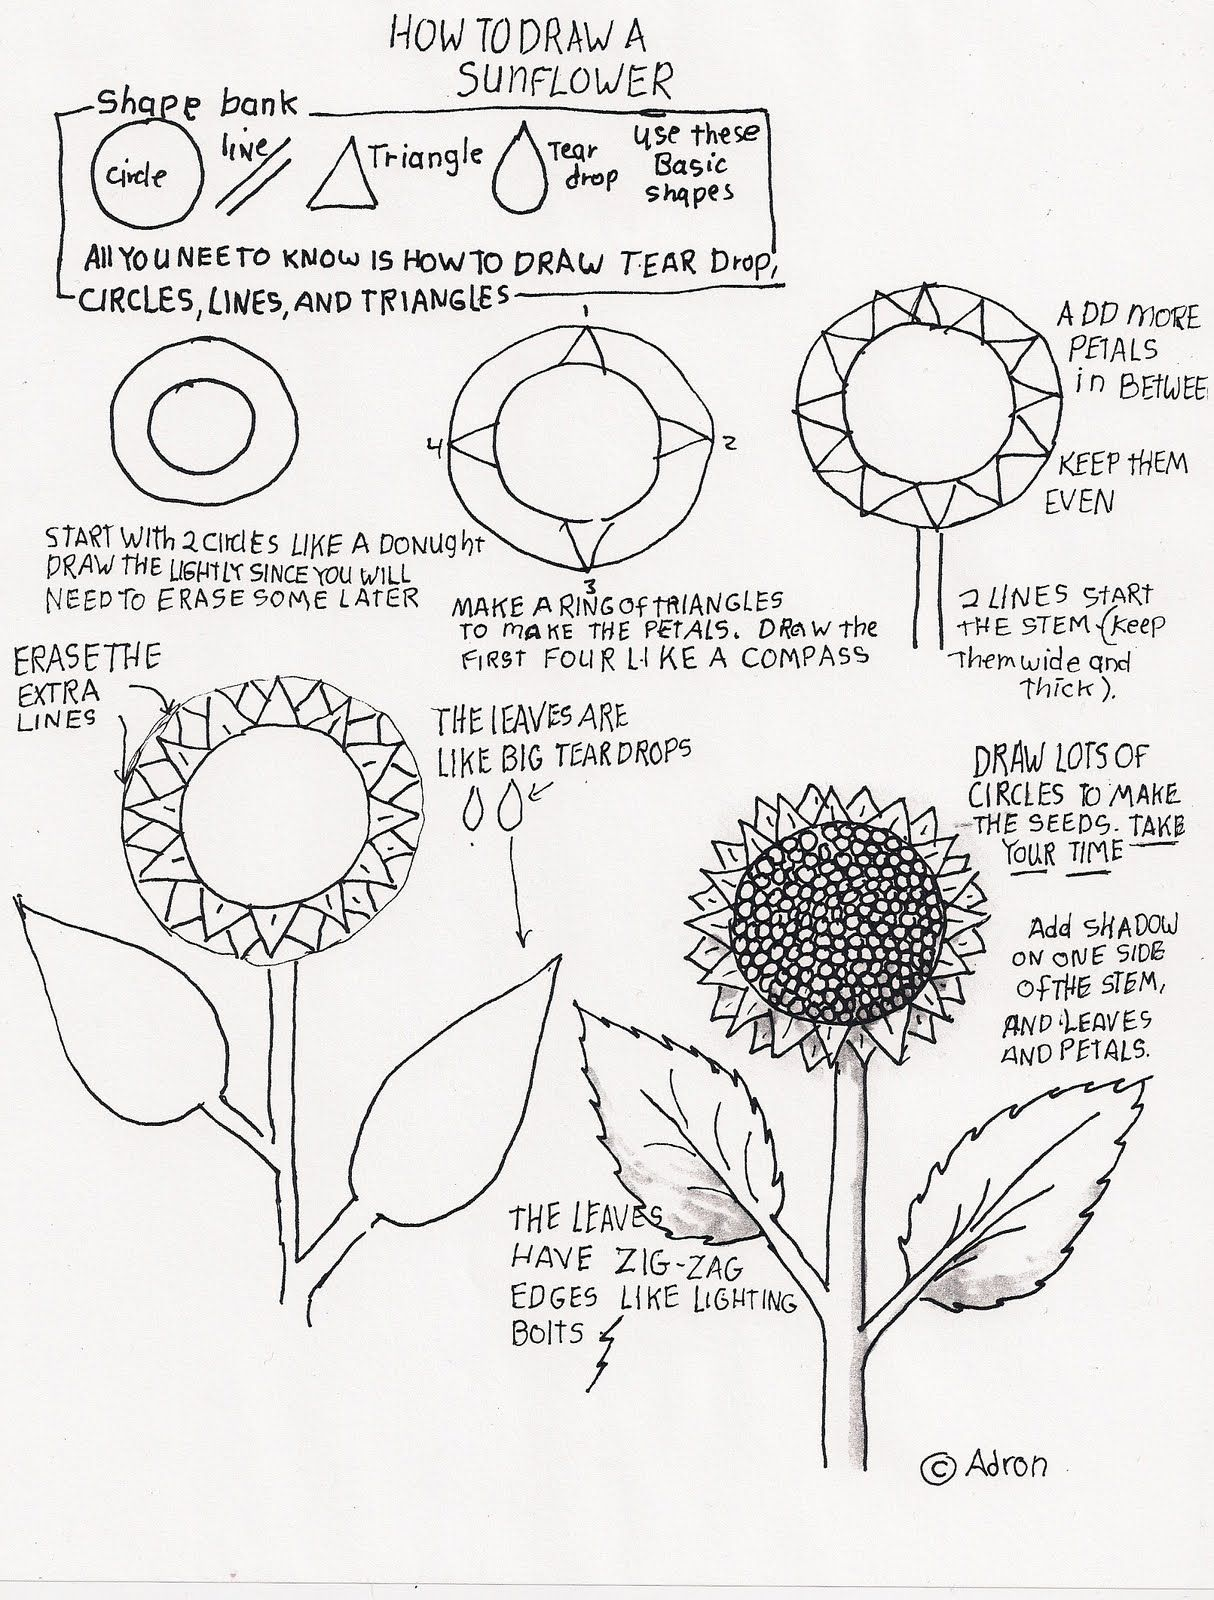 1000 images about how to draw on pinterest